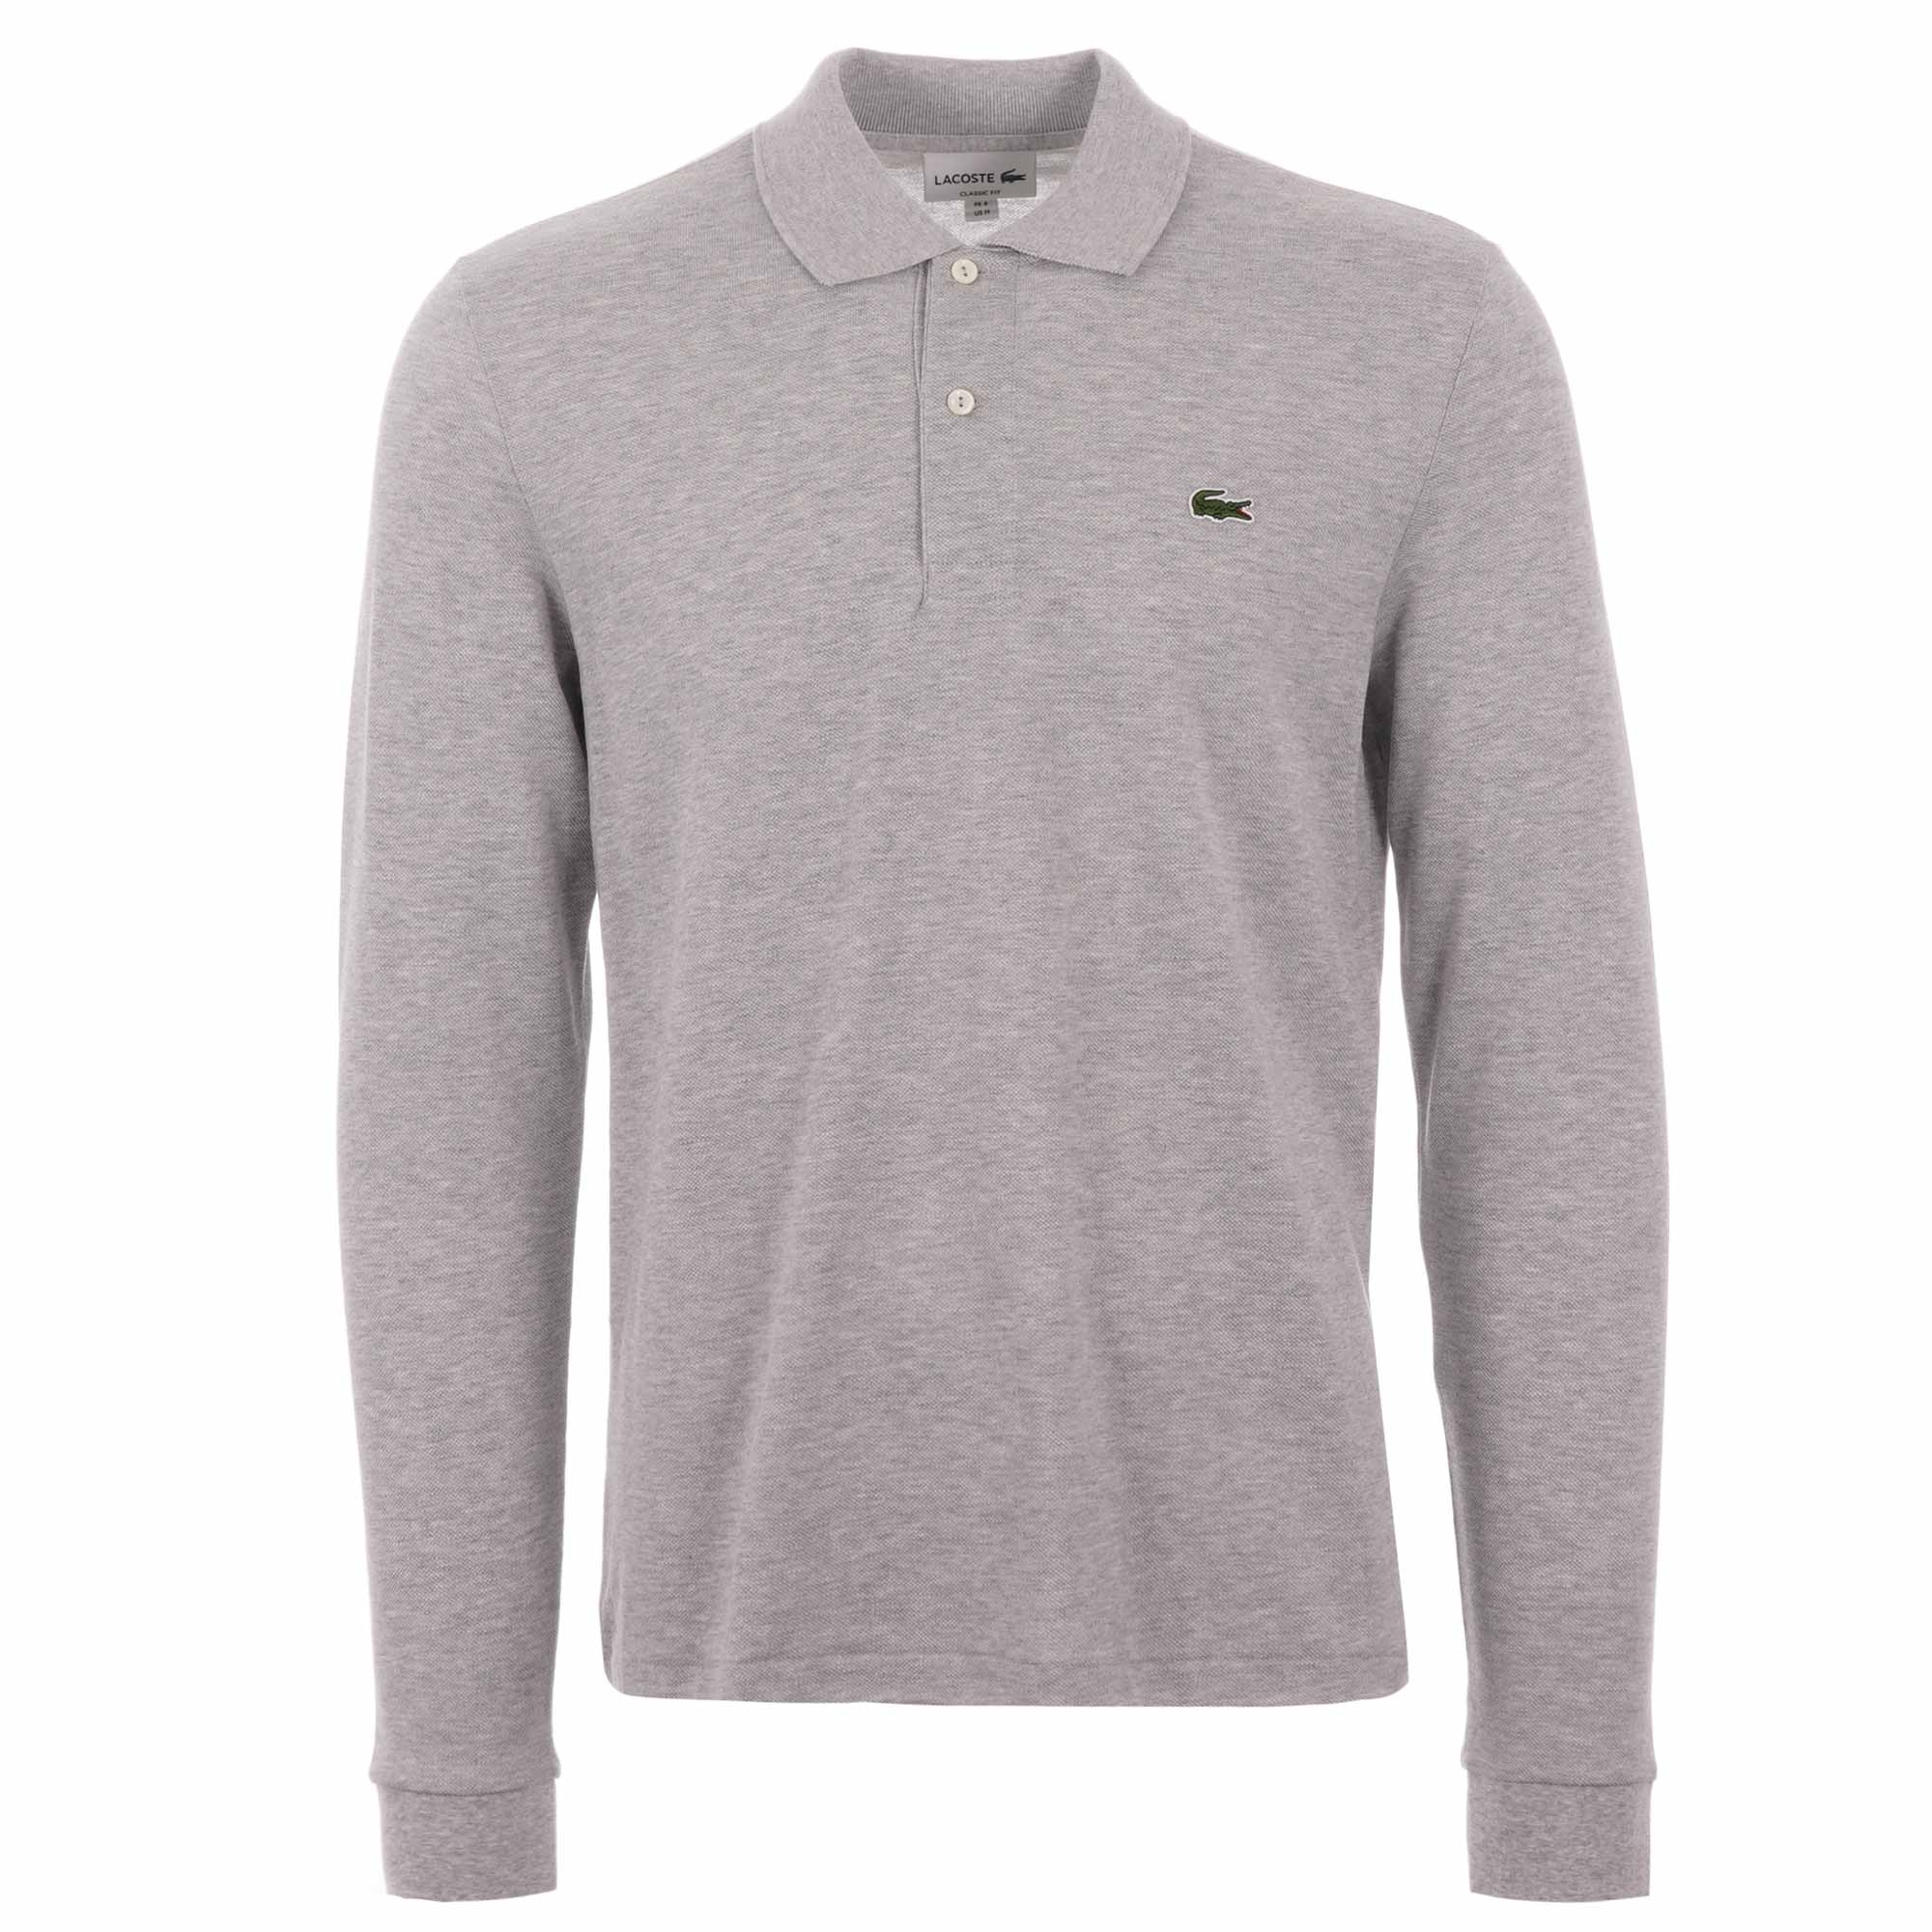 ef9eb8a9 L.13.13 Long Sleeve Polo Shirt - Silver Marl